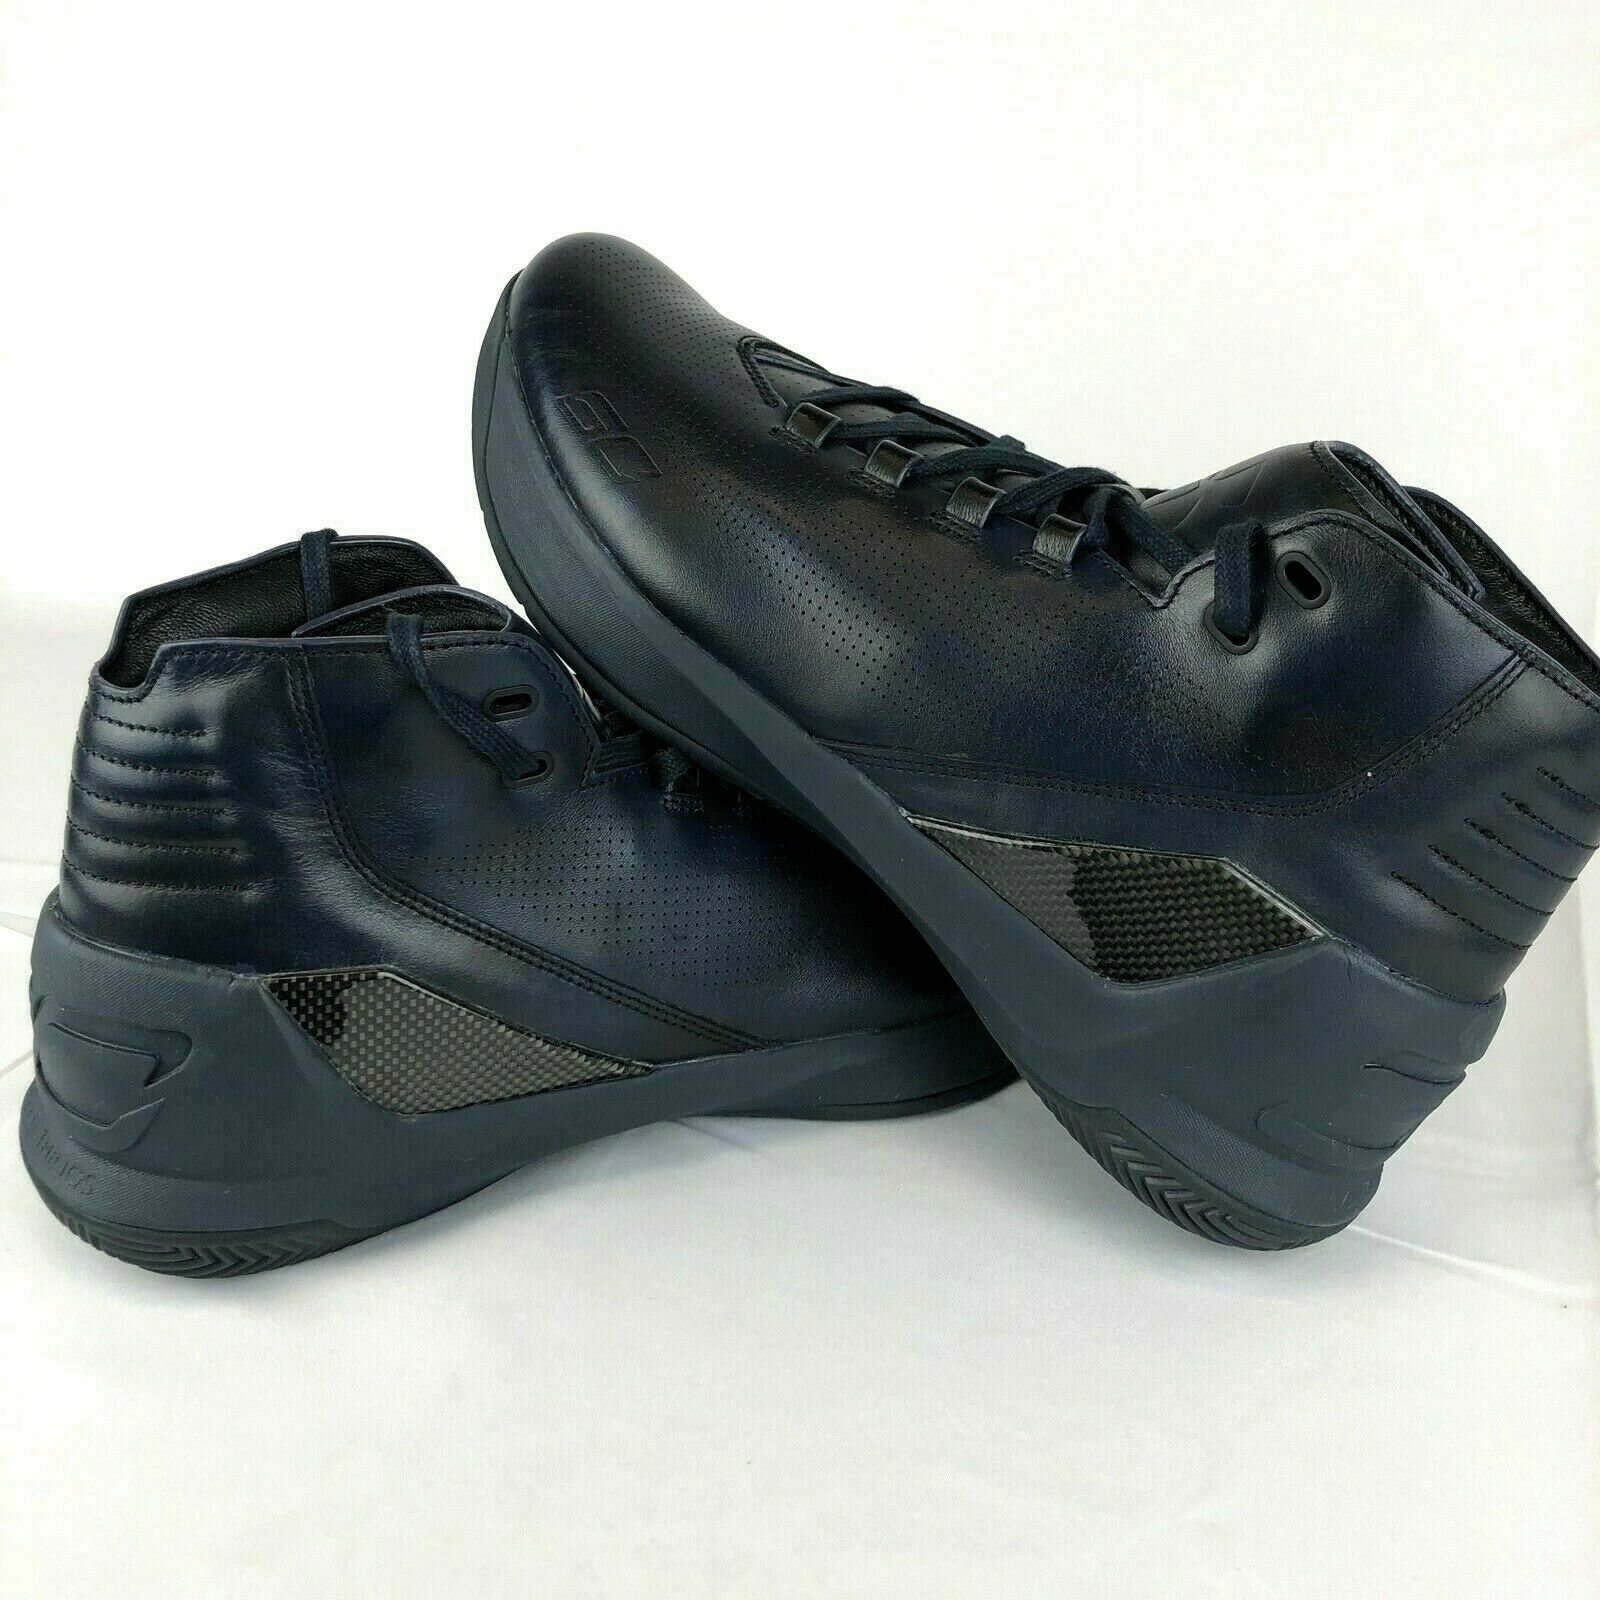 Under Armour Curry Curry Curry 3 Lux Limited Edition Leather Basketball  1299661-997 SZ 8 eef92d